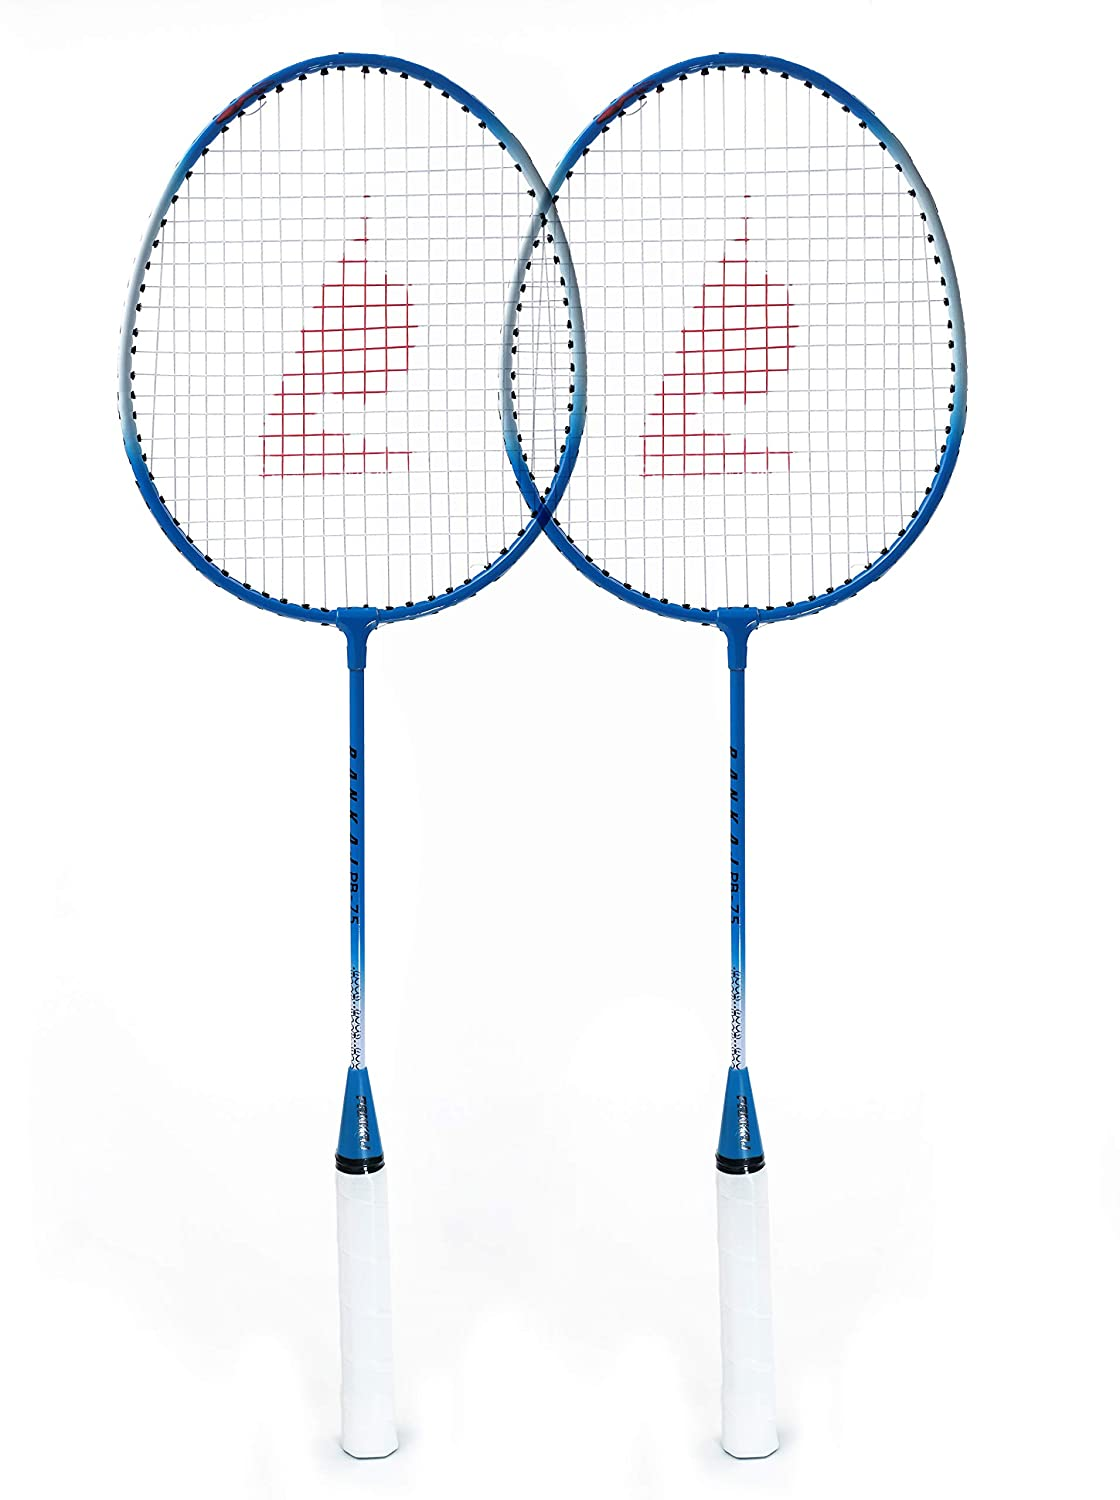 Badminton Racket - PB 75 - Pack for 2 (Blue)